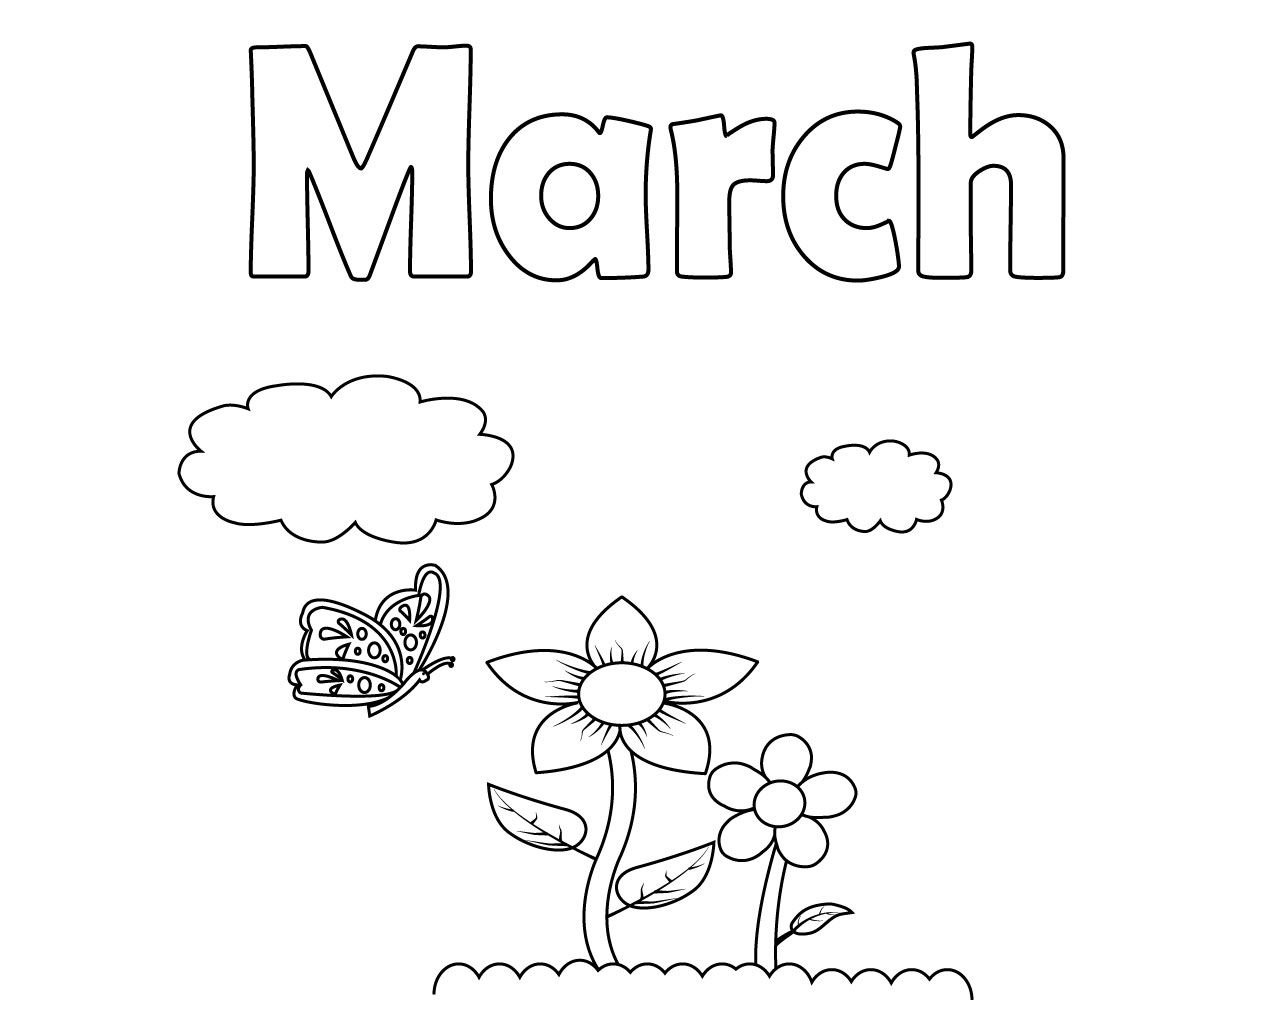 March Coloring Pages for Toddlers Toddler coloring book